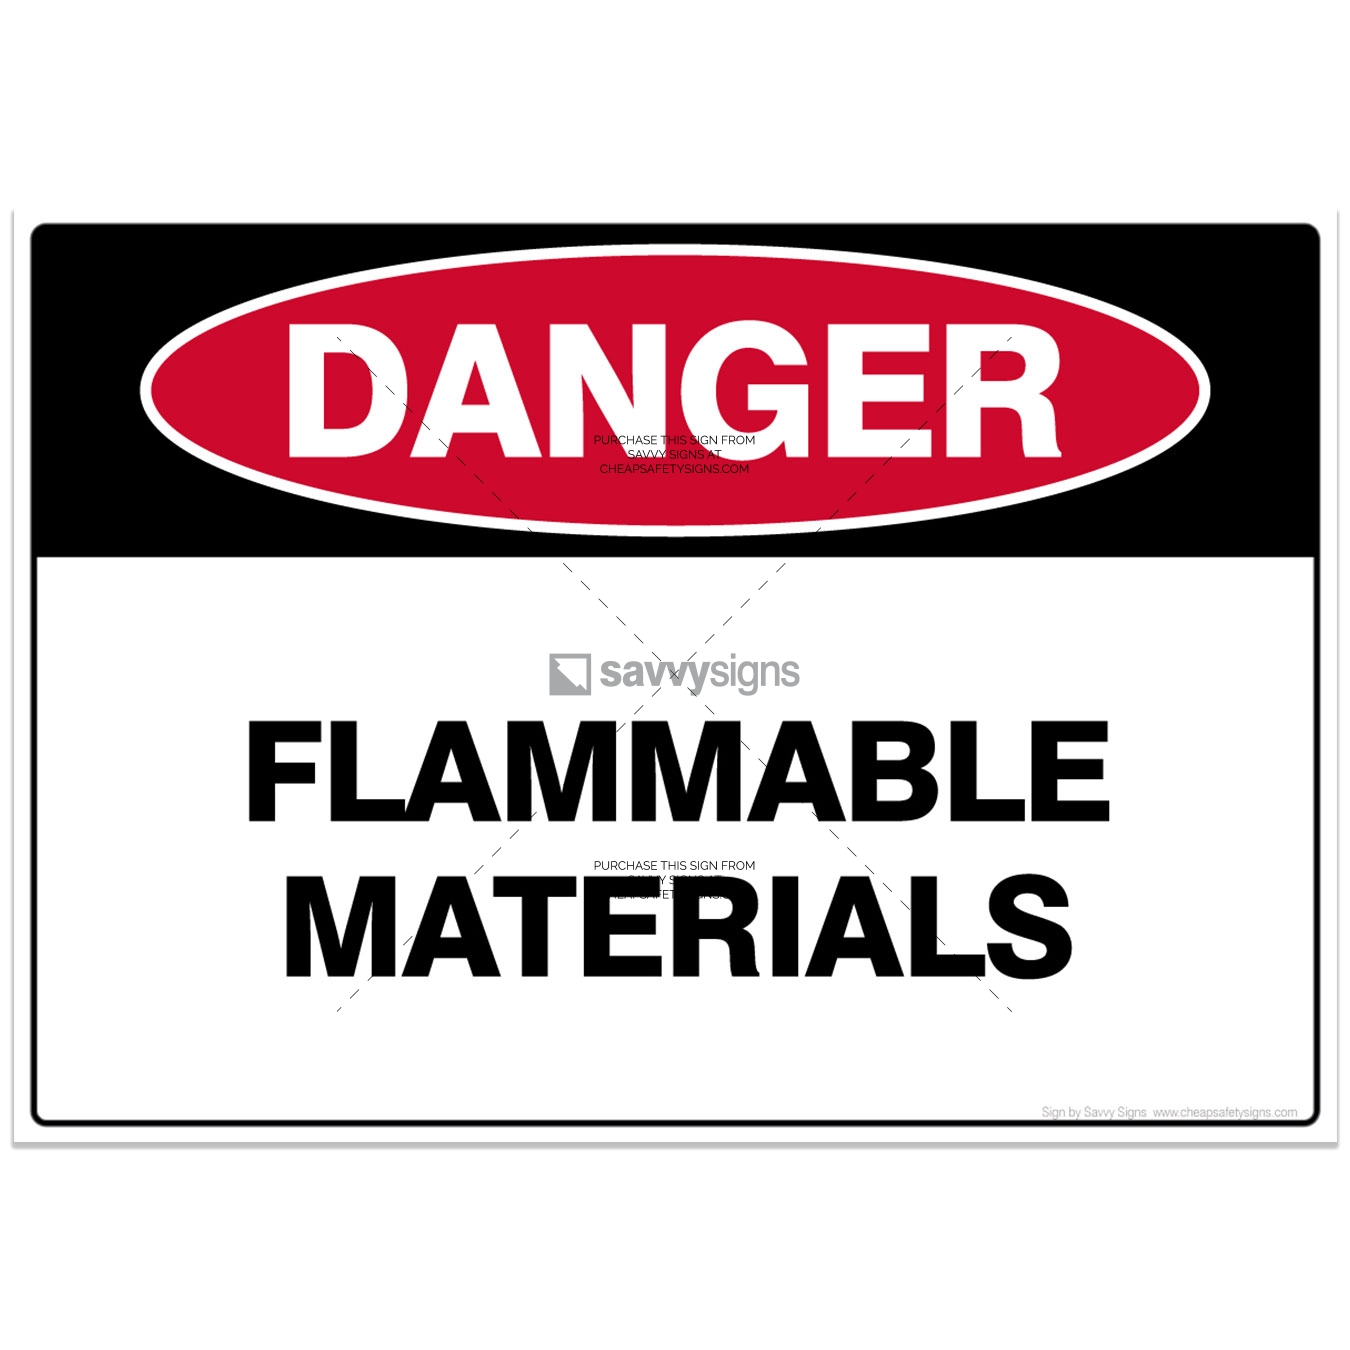 SSDAN3046-DANGER-Workplace-Safety-Signs_Savvy-Signs_v4.1